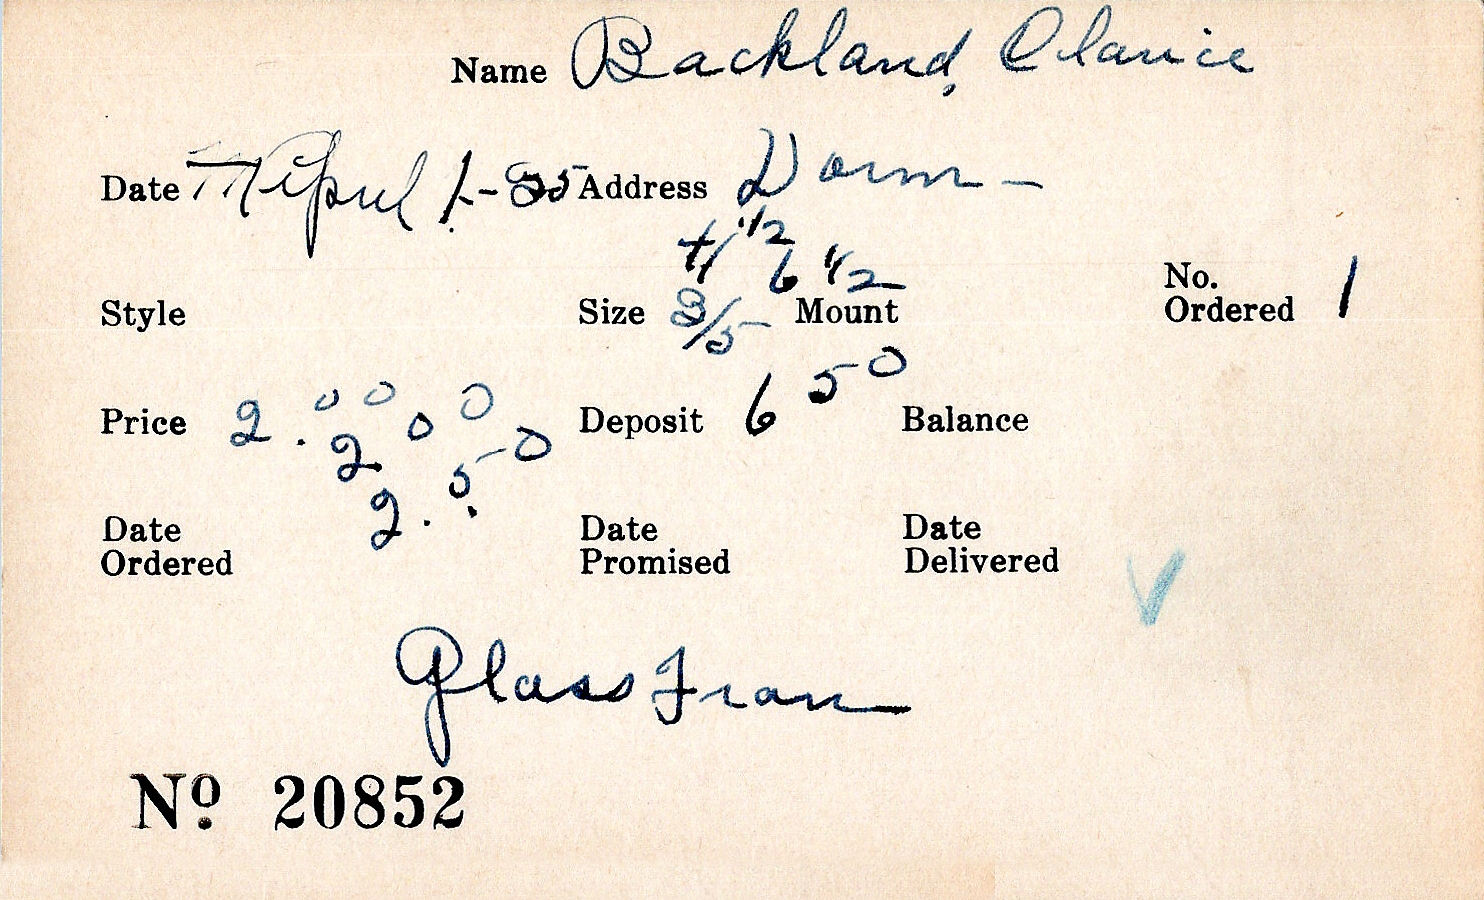 Index card for Clarice Backland